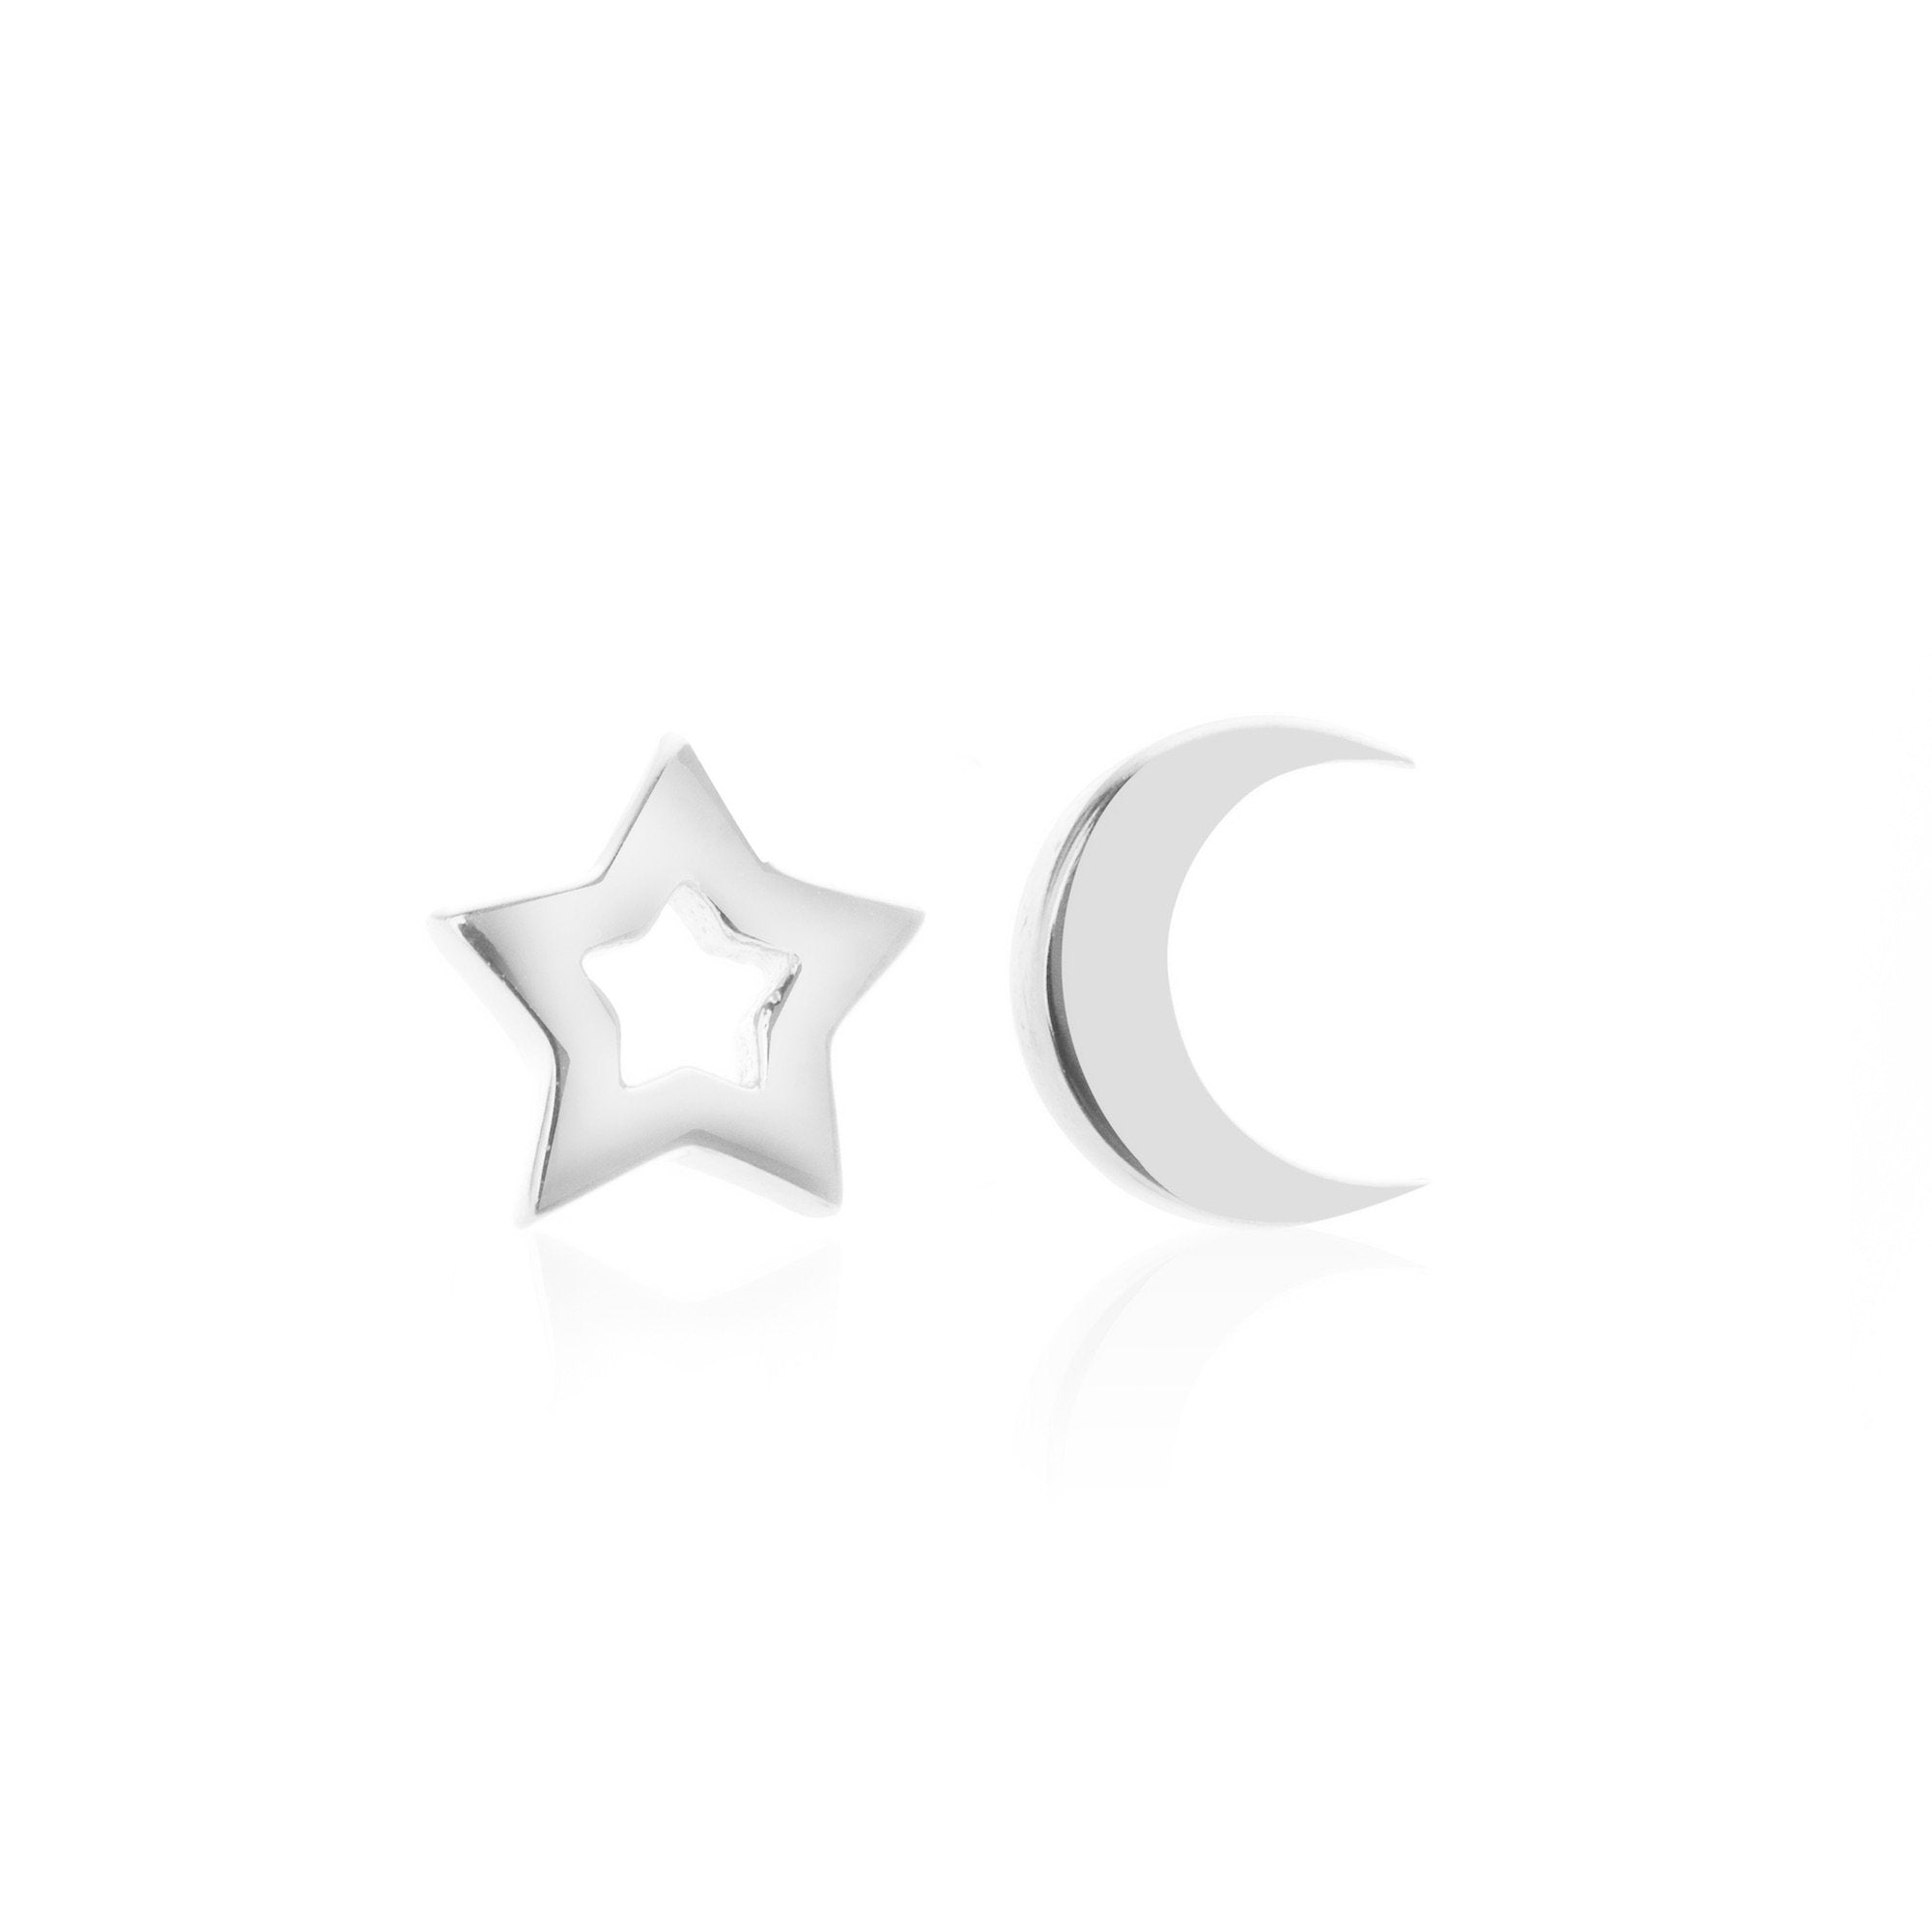 Silk & Steel Jewellery Superfine Silver Star and Moon Sterling Silver Stud Earrings